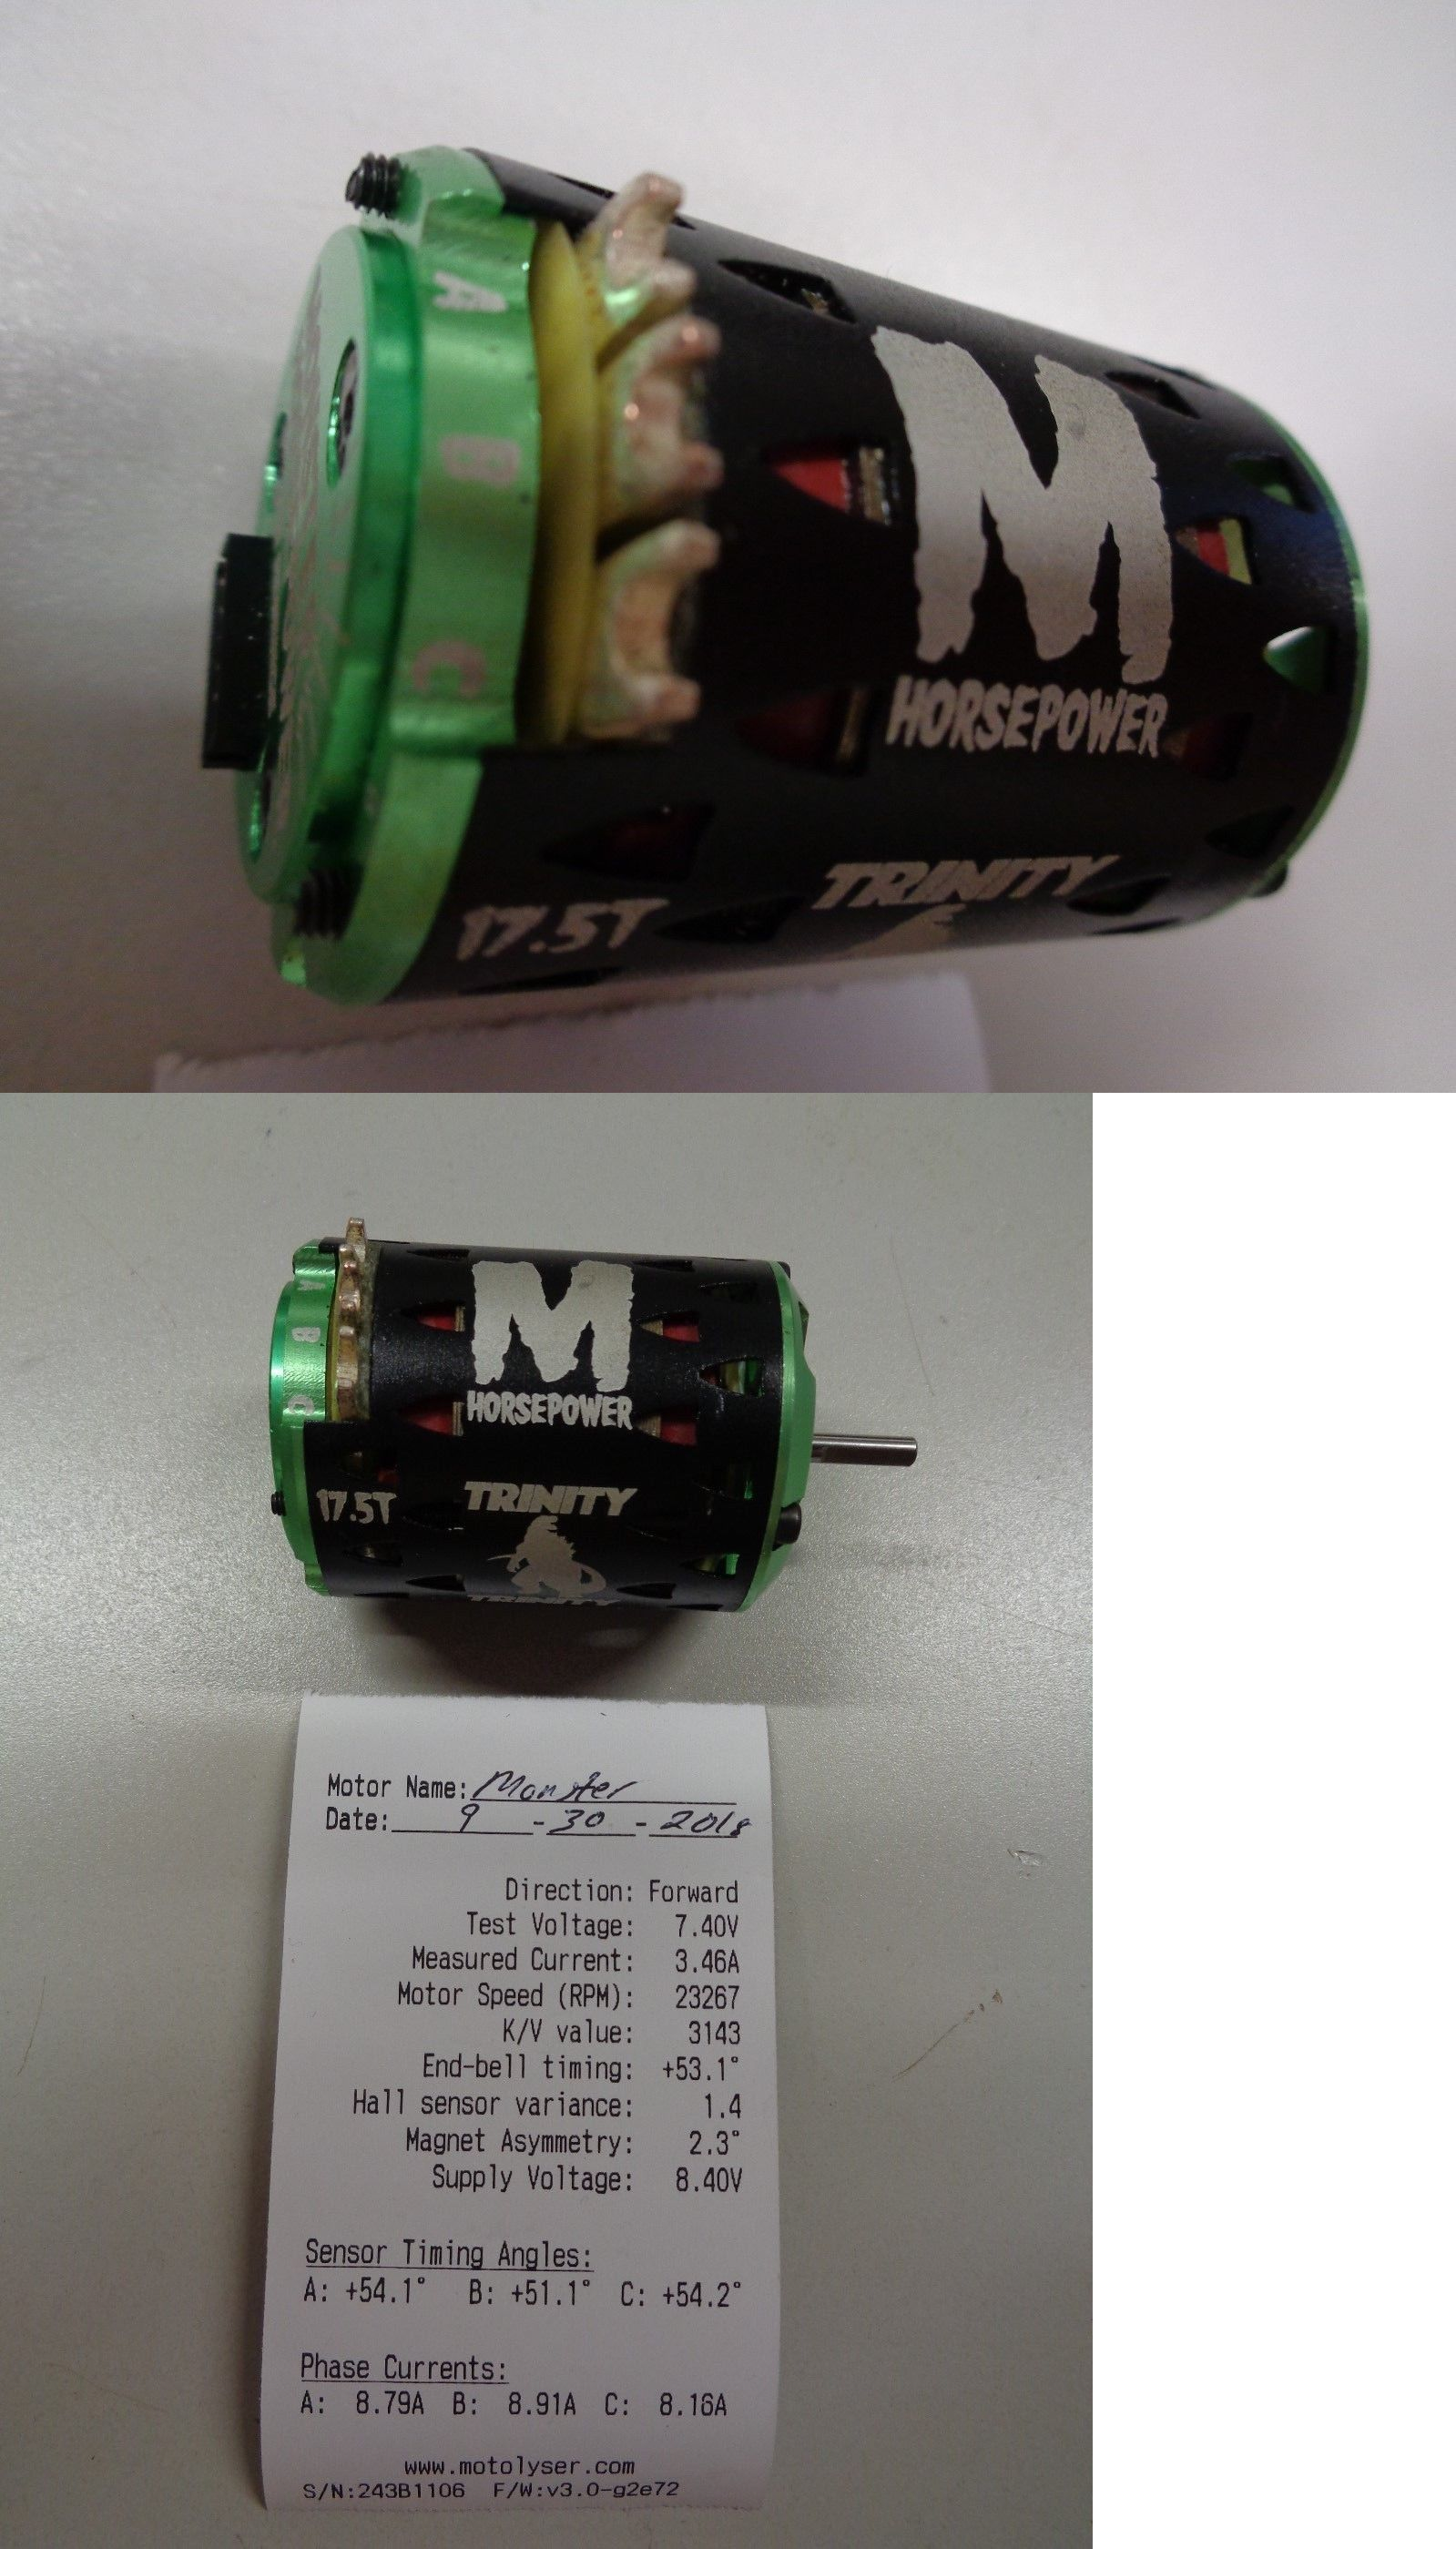 medium resolution of electric motors 100058 new trinity monster 17 5 brushless motor buy it now only 90 on ebay electric motors trinity monster brushless motor